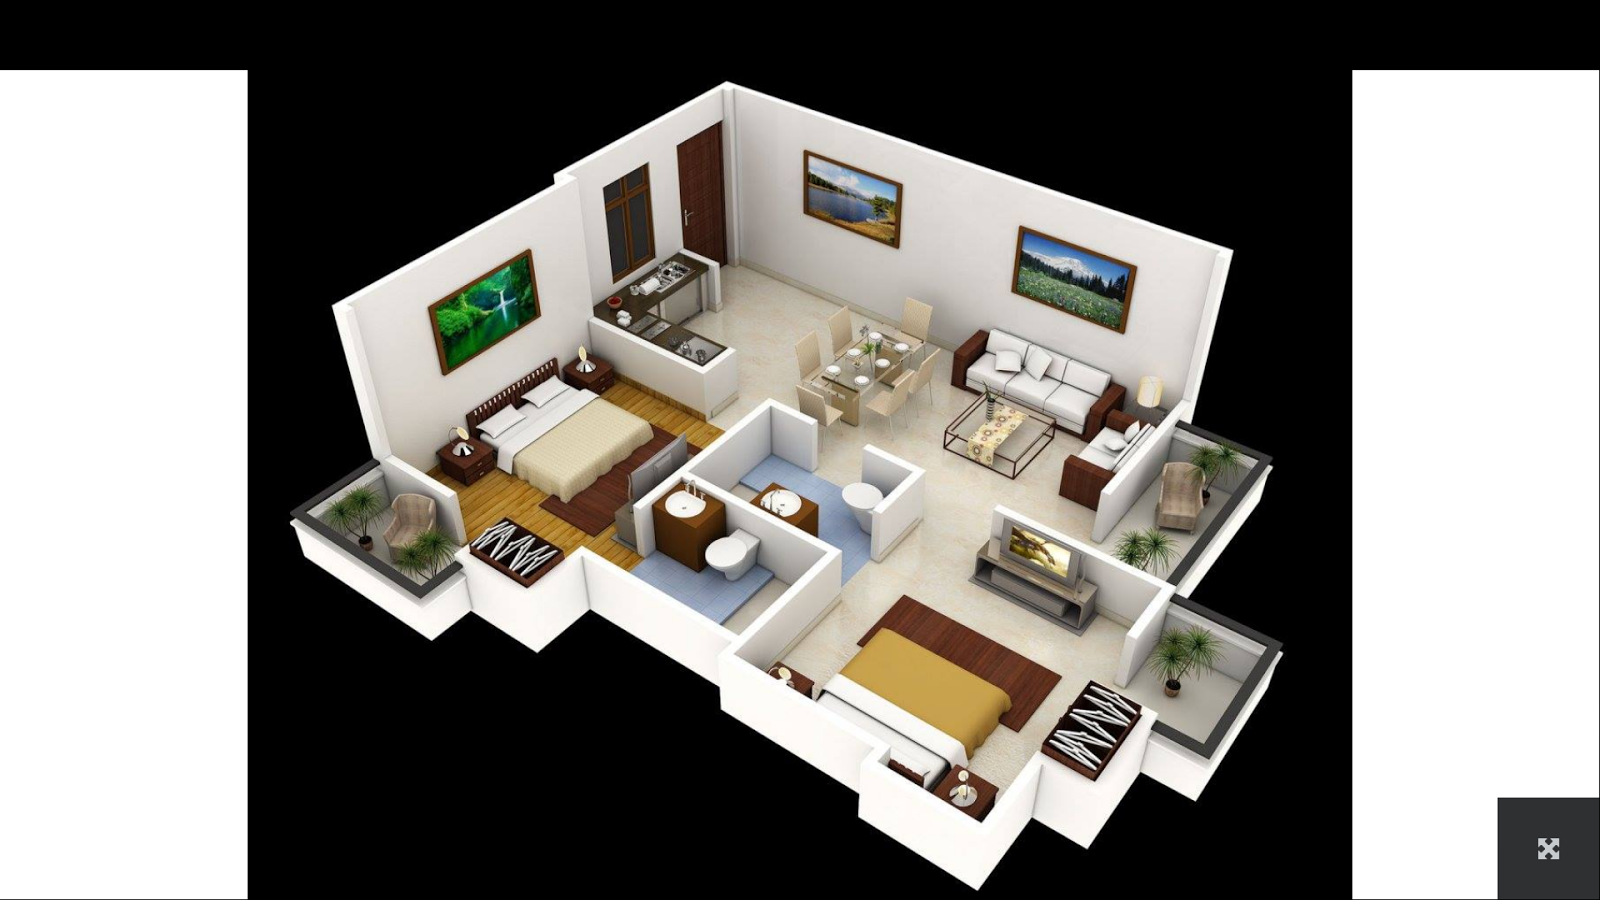 3d house plans 1 2 apk download android lifestyle apps - House plan drawing apps ...